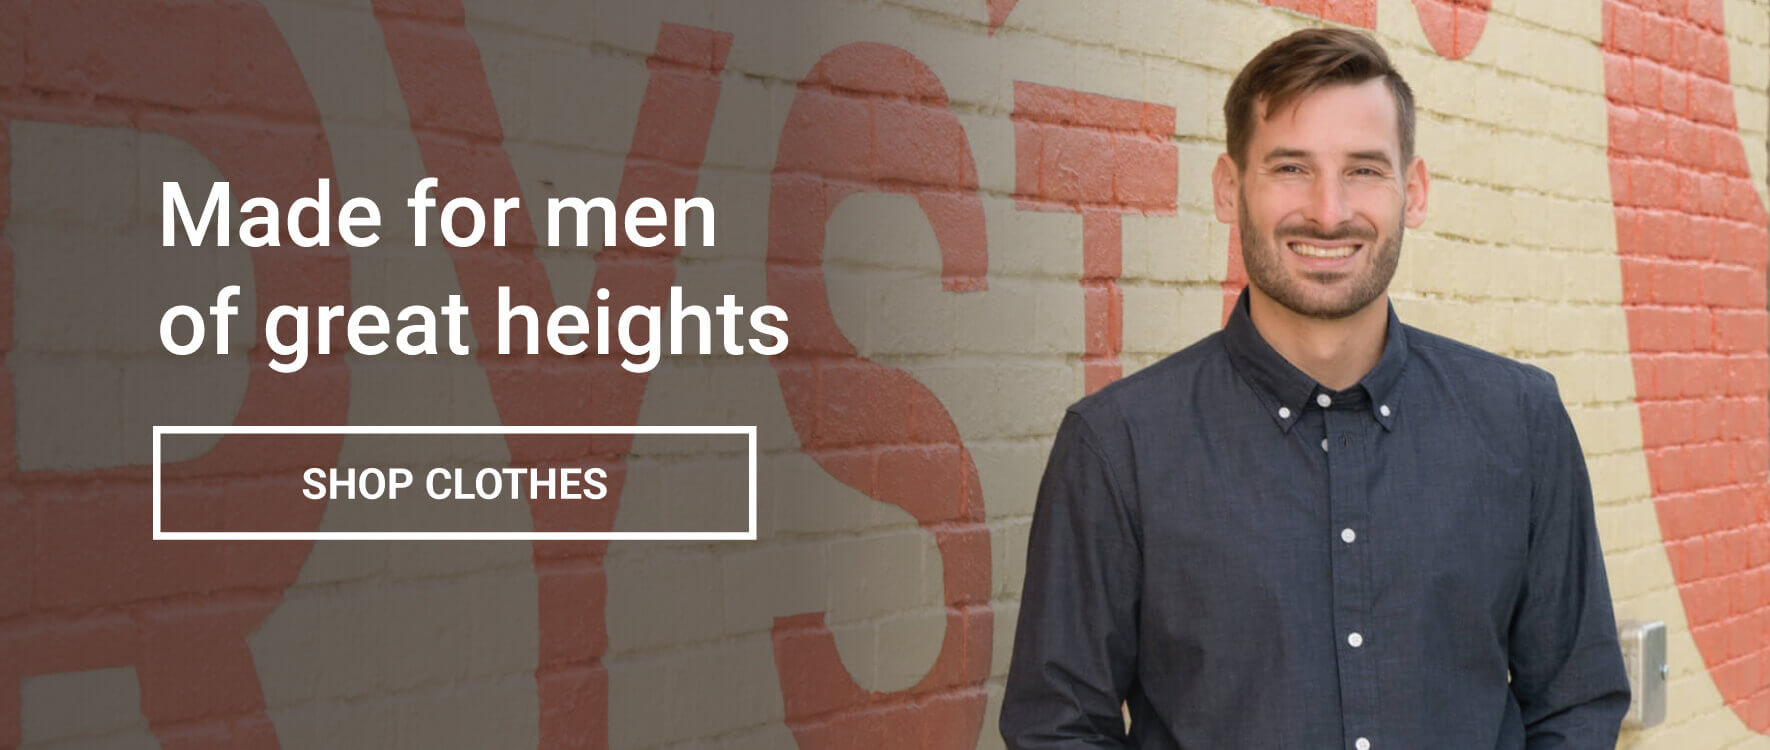 Made for men of great heights - Shop clothes